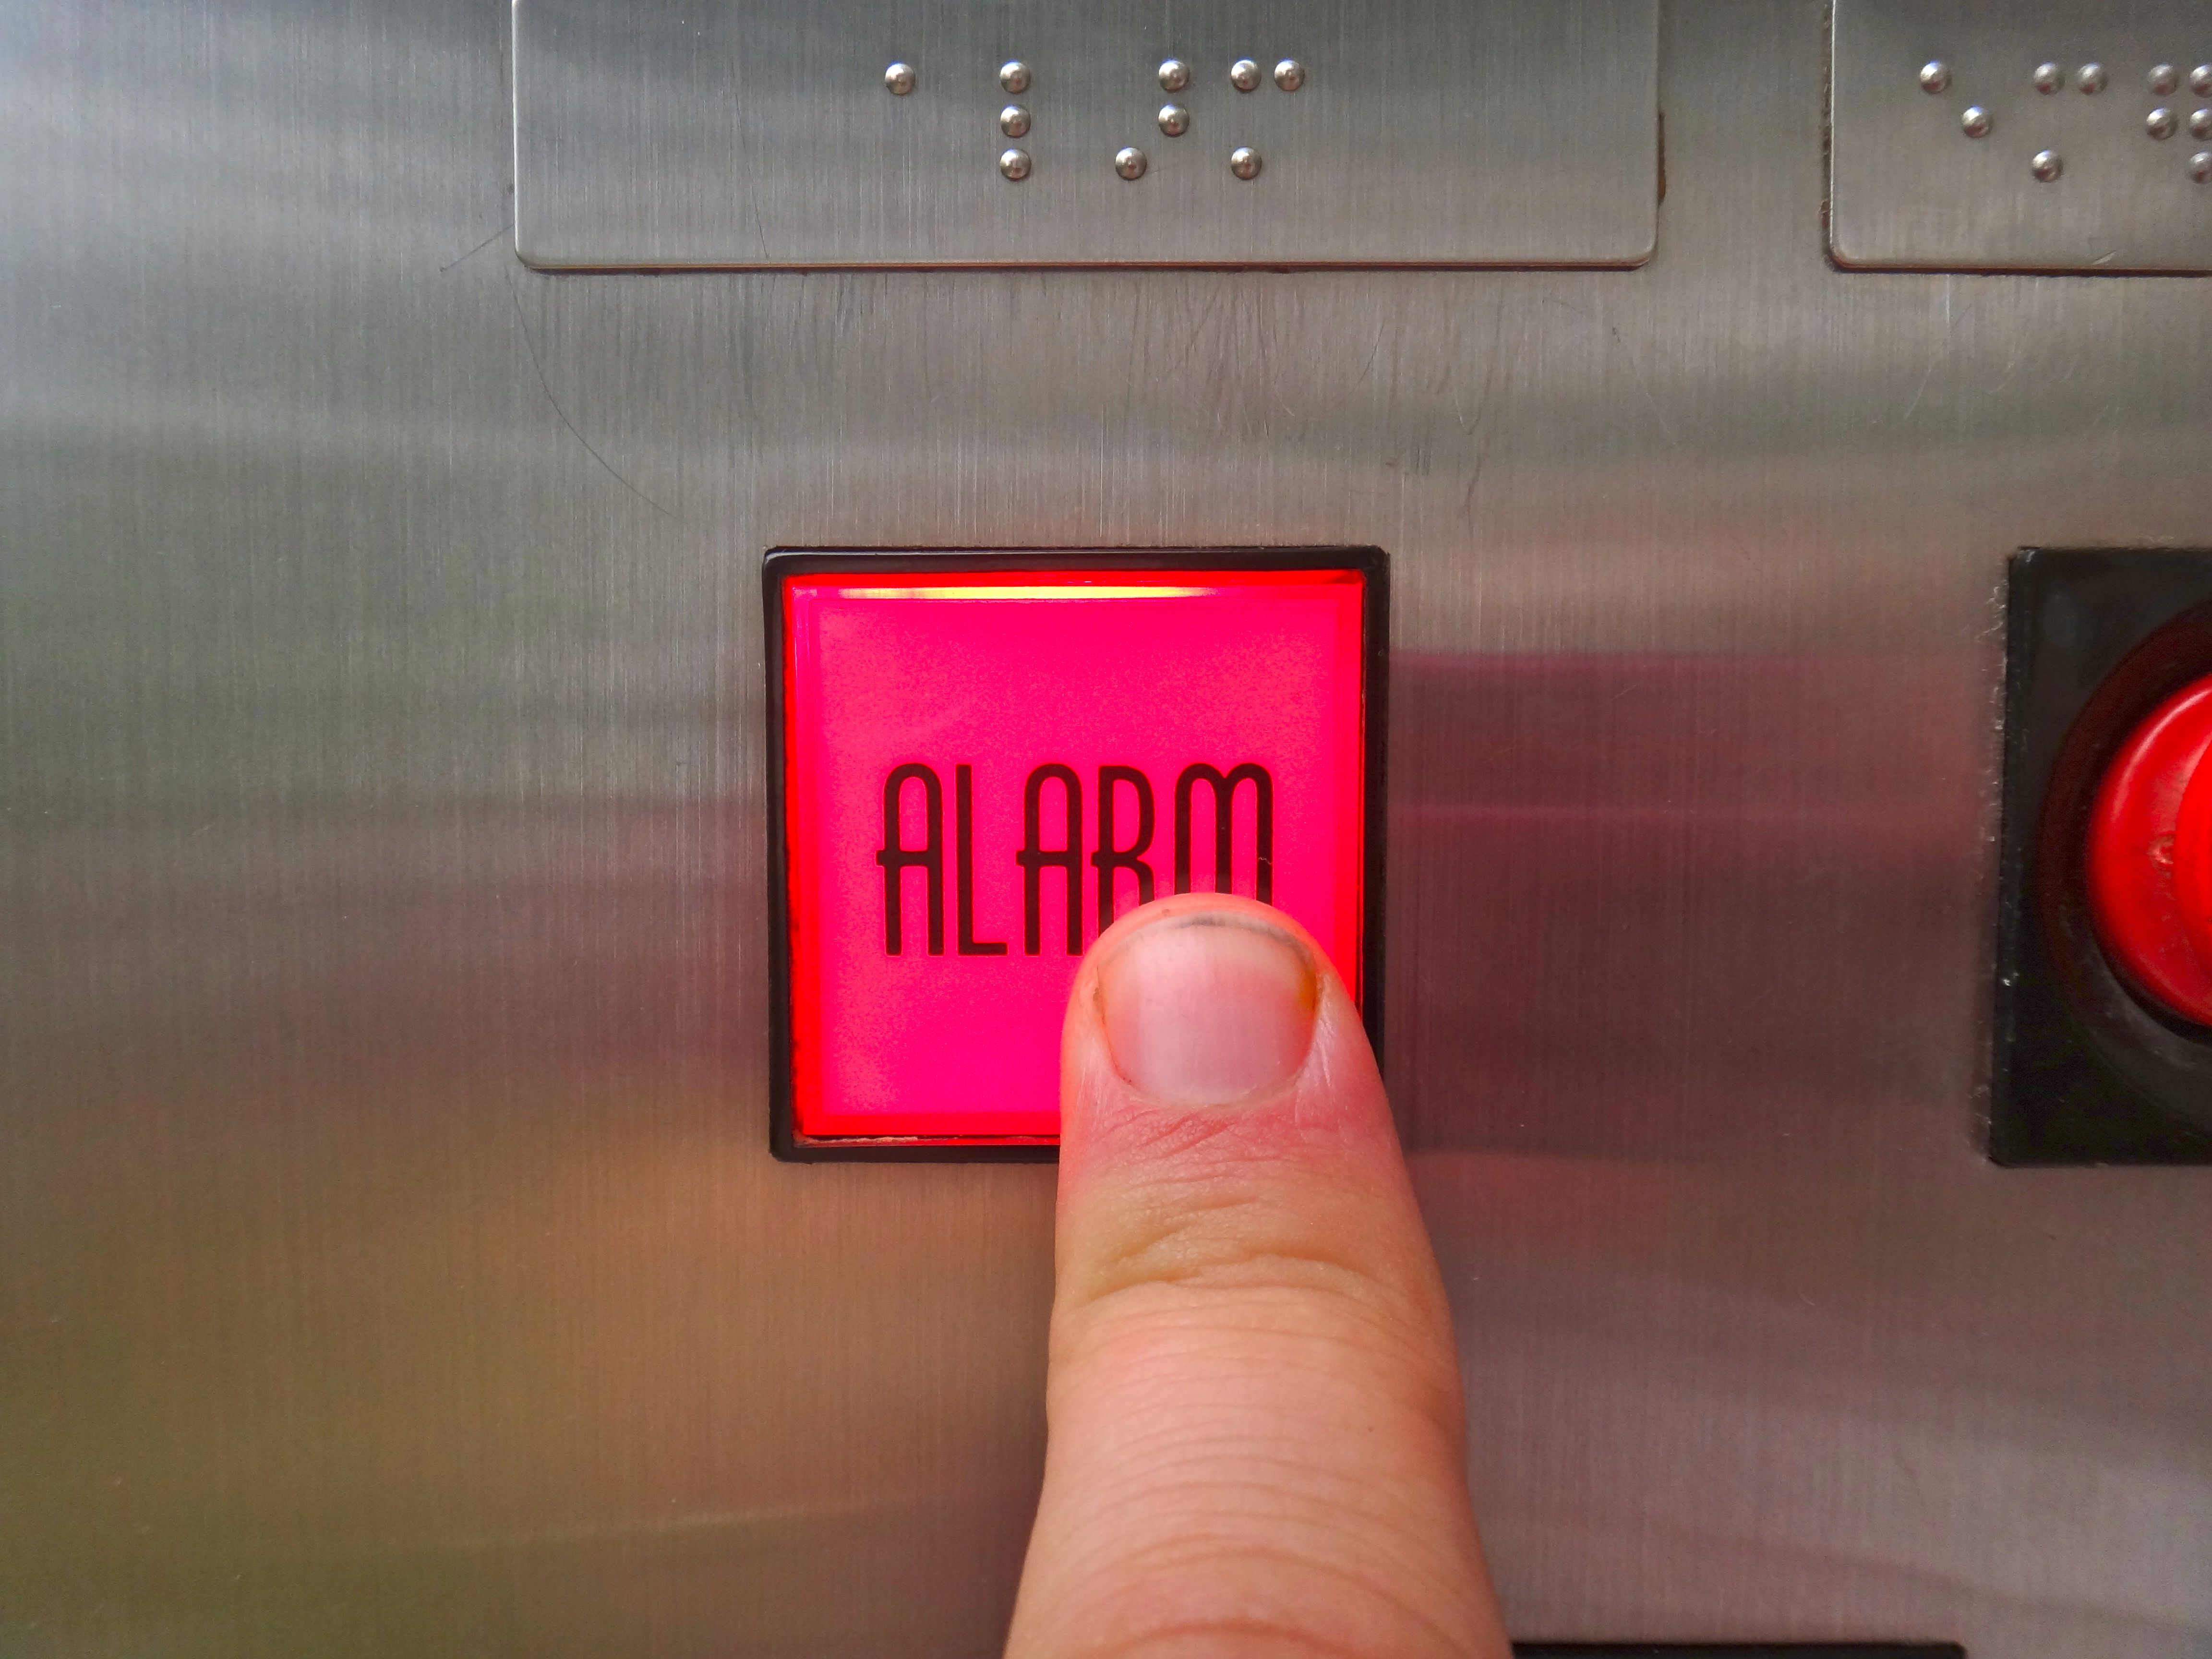 Button in an Elevator